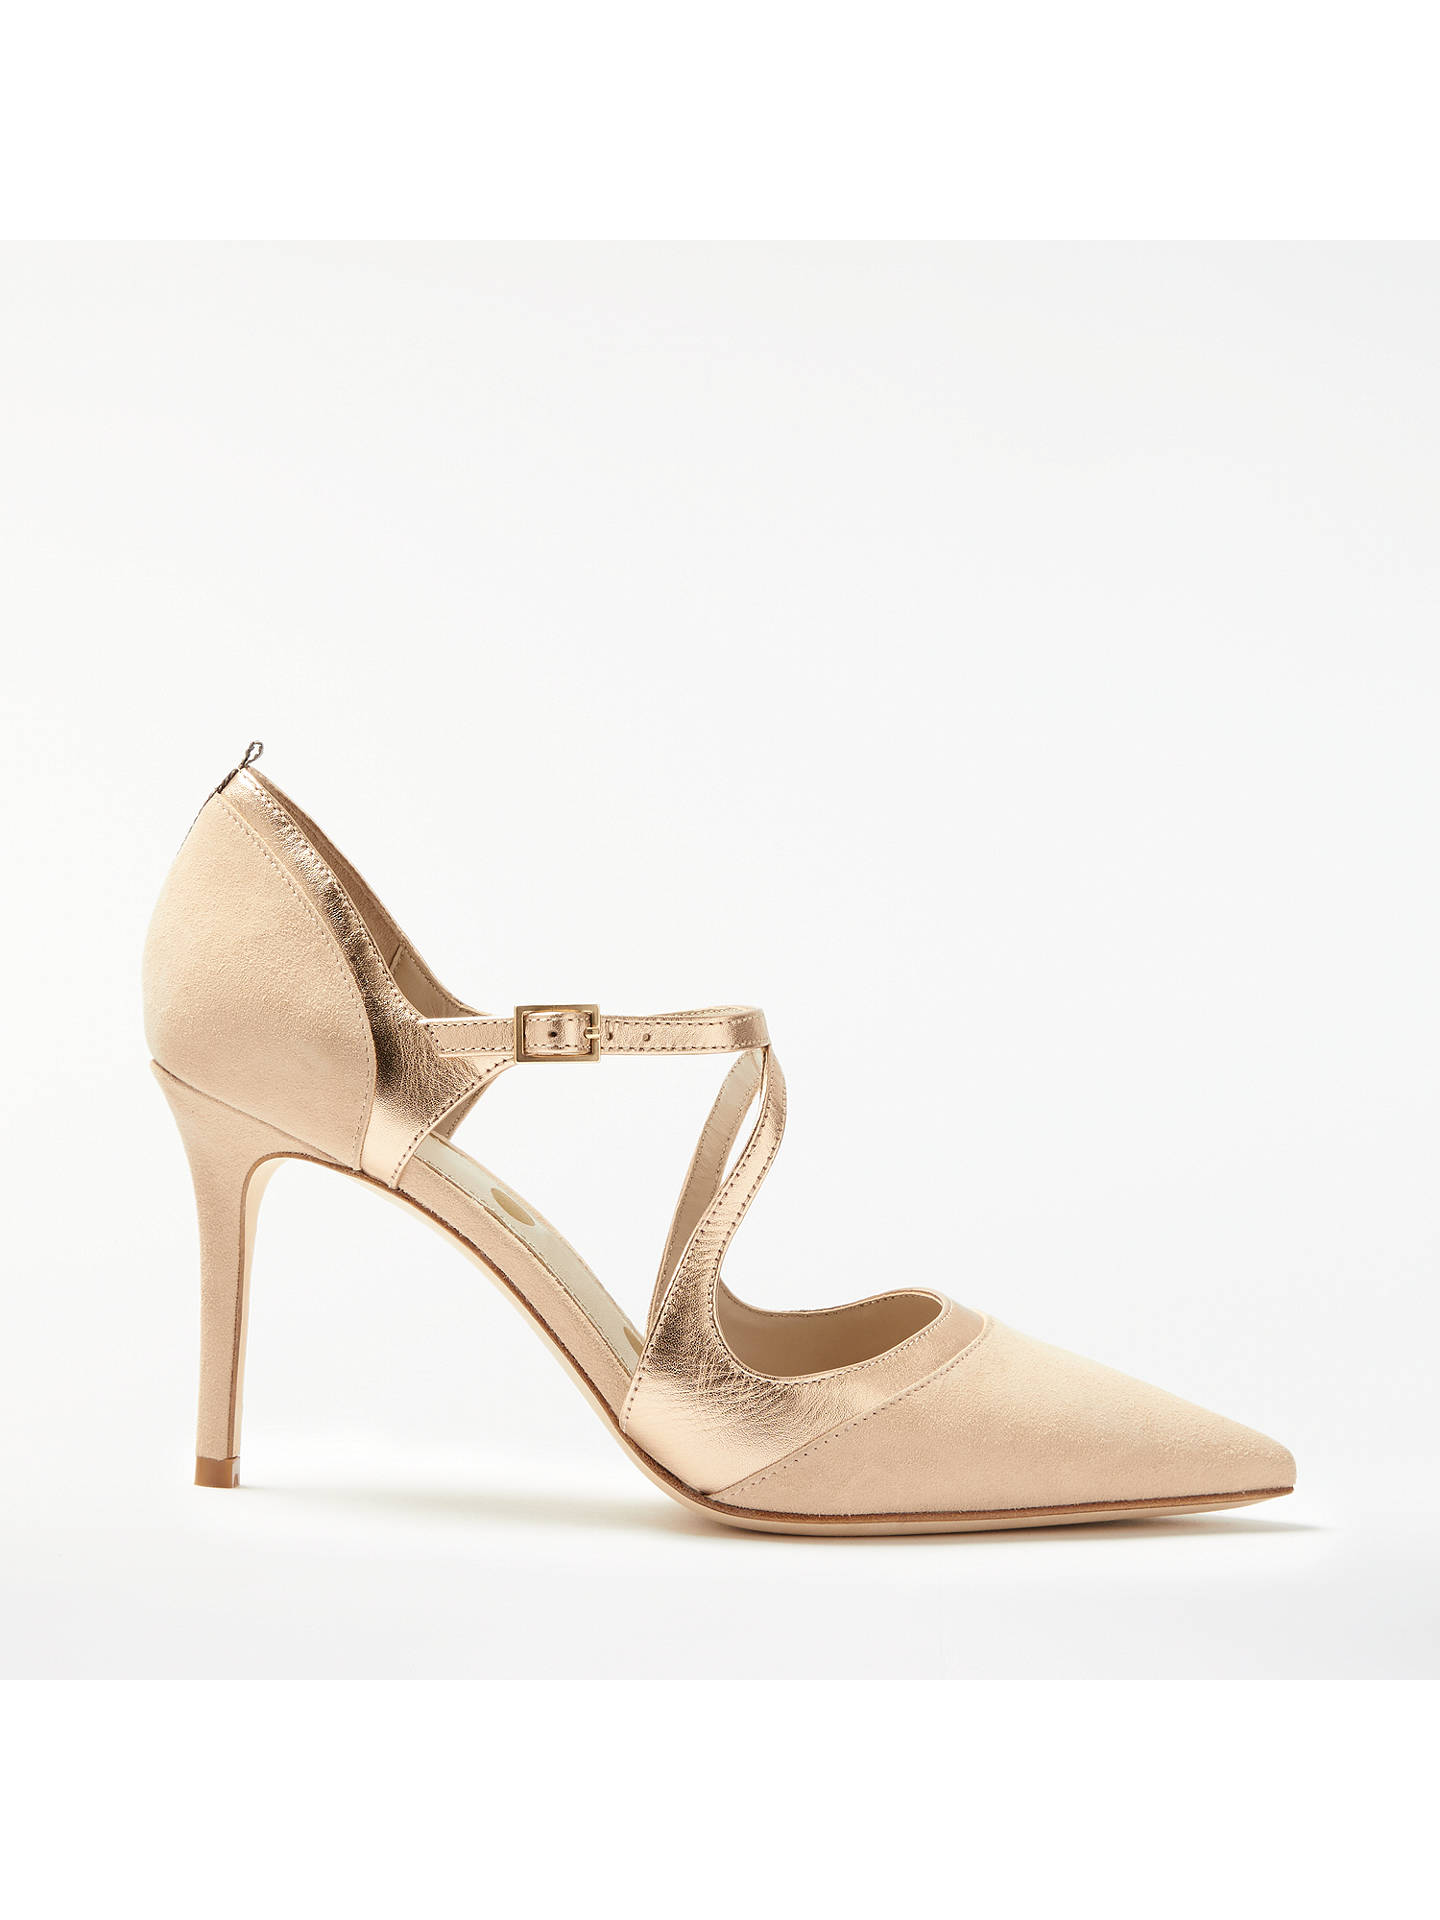 Buy Boden Tisha Pointed Toe Court Shoes, Soft Rose Leather/Suede, 4 Online at johnlewis.com